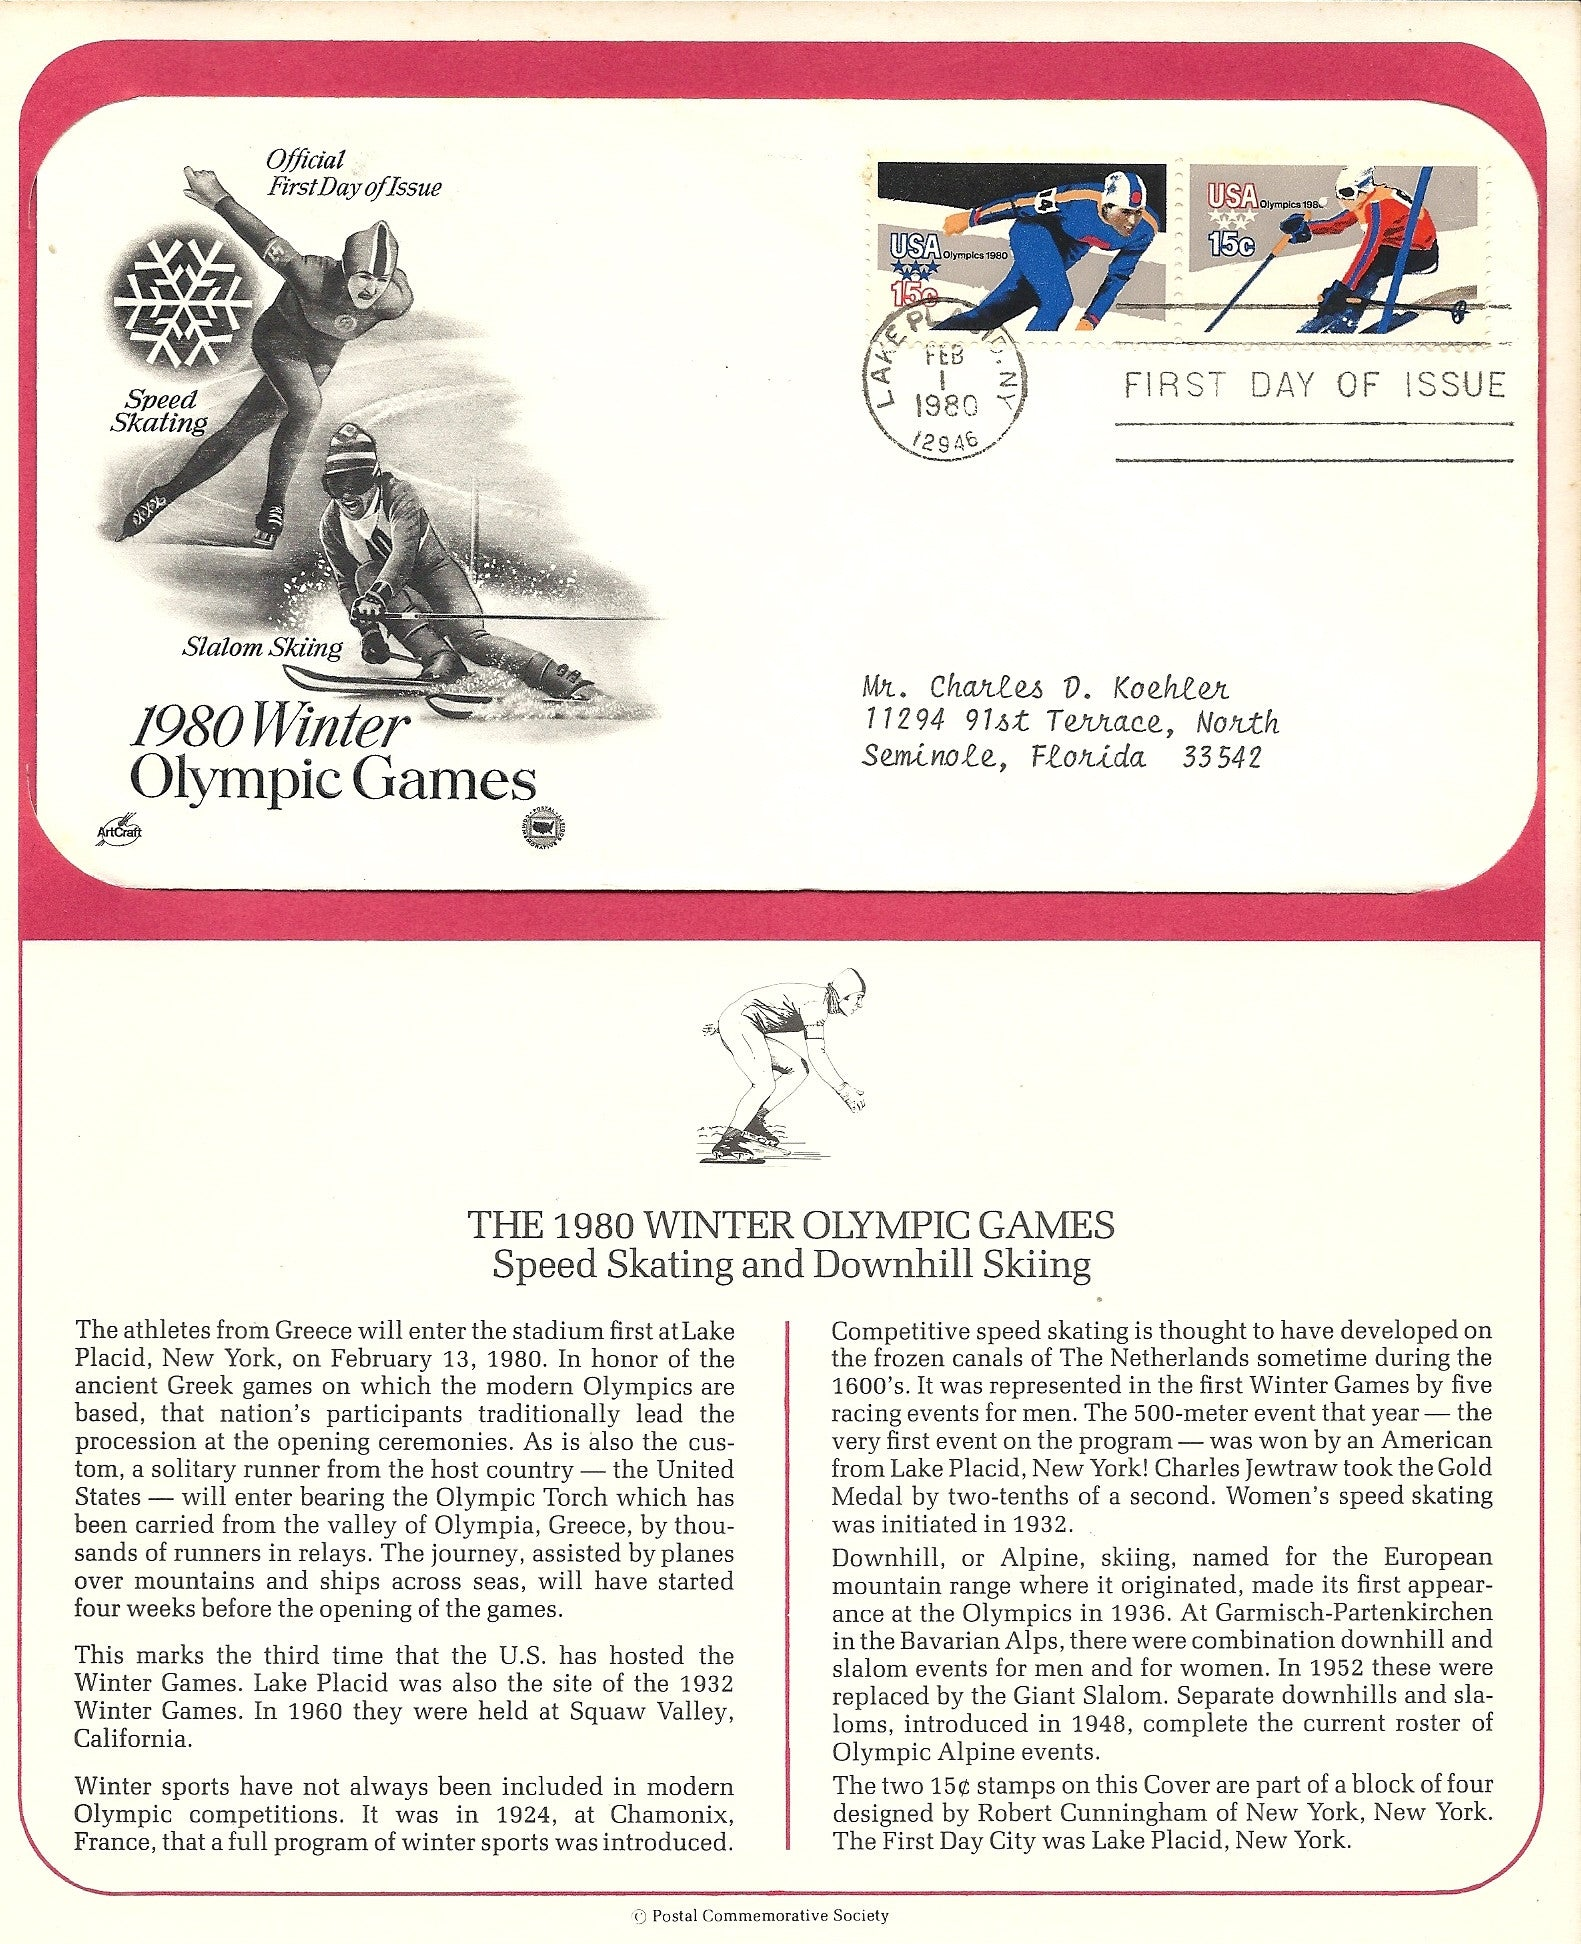 02 01 1980 FDC WH Winter Olympic Games Speed Skating  Downhill Skiing